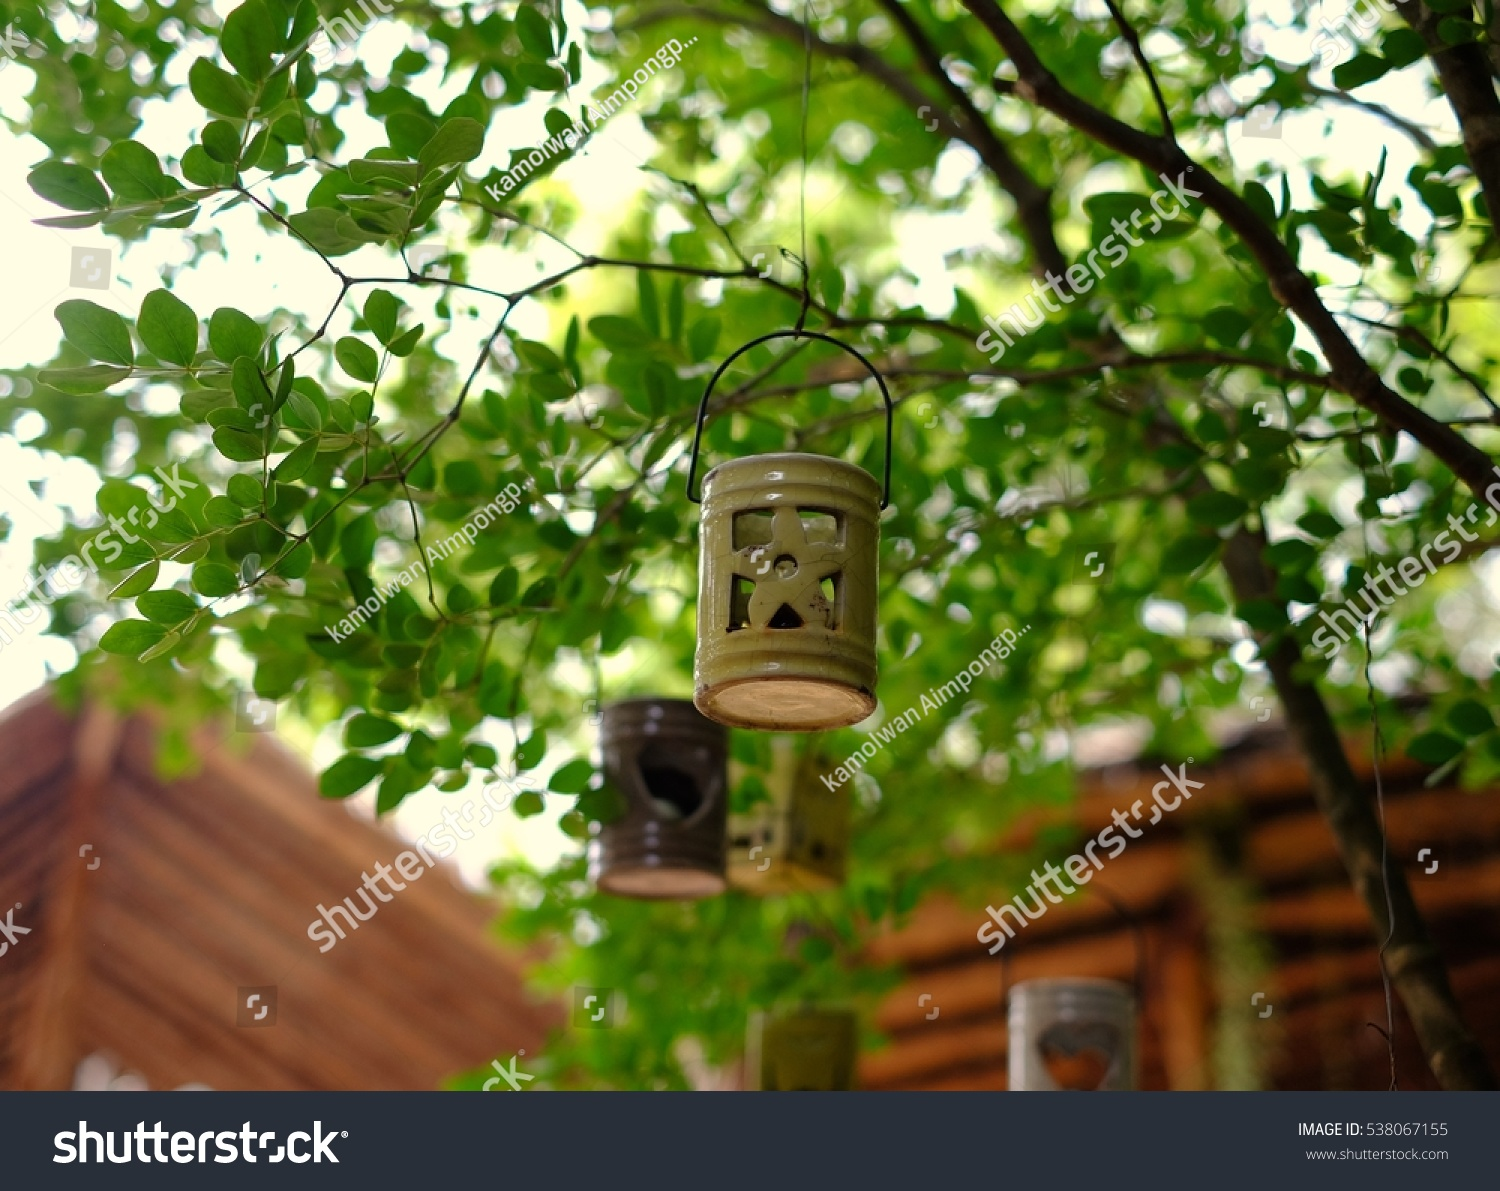 Lamps Made Clay Used Decorative Garden Stock Photo (Royalty Free ...